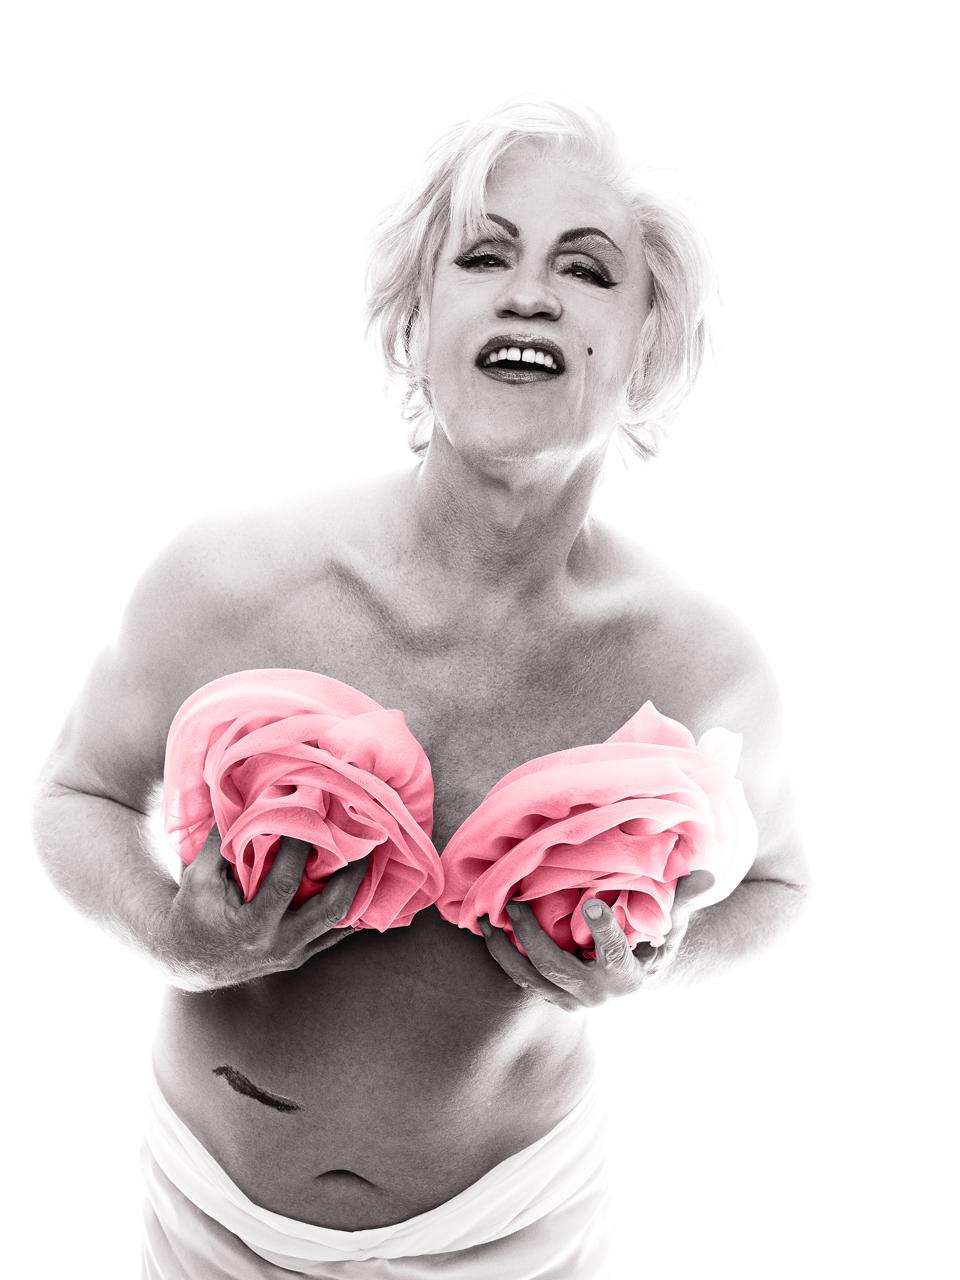 Sandro Miller after Bert Stern, Marilyn in Pink Roses (from The Last Session, 1962), 2014.